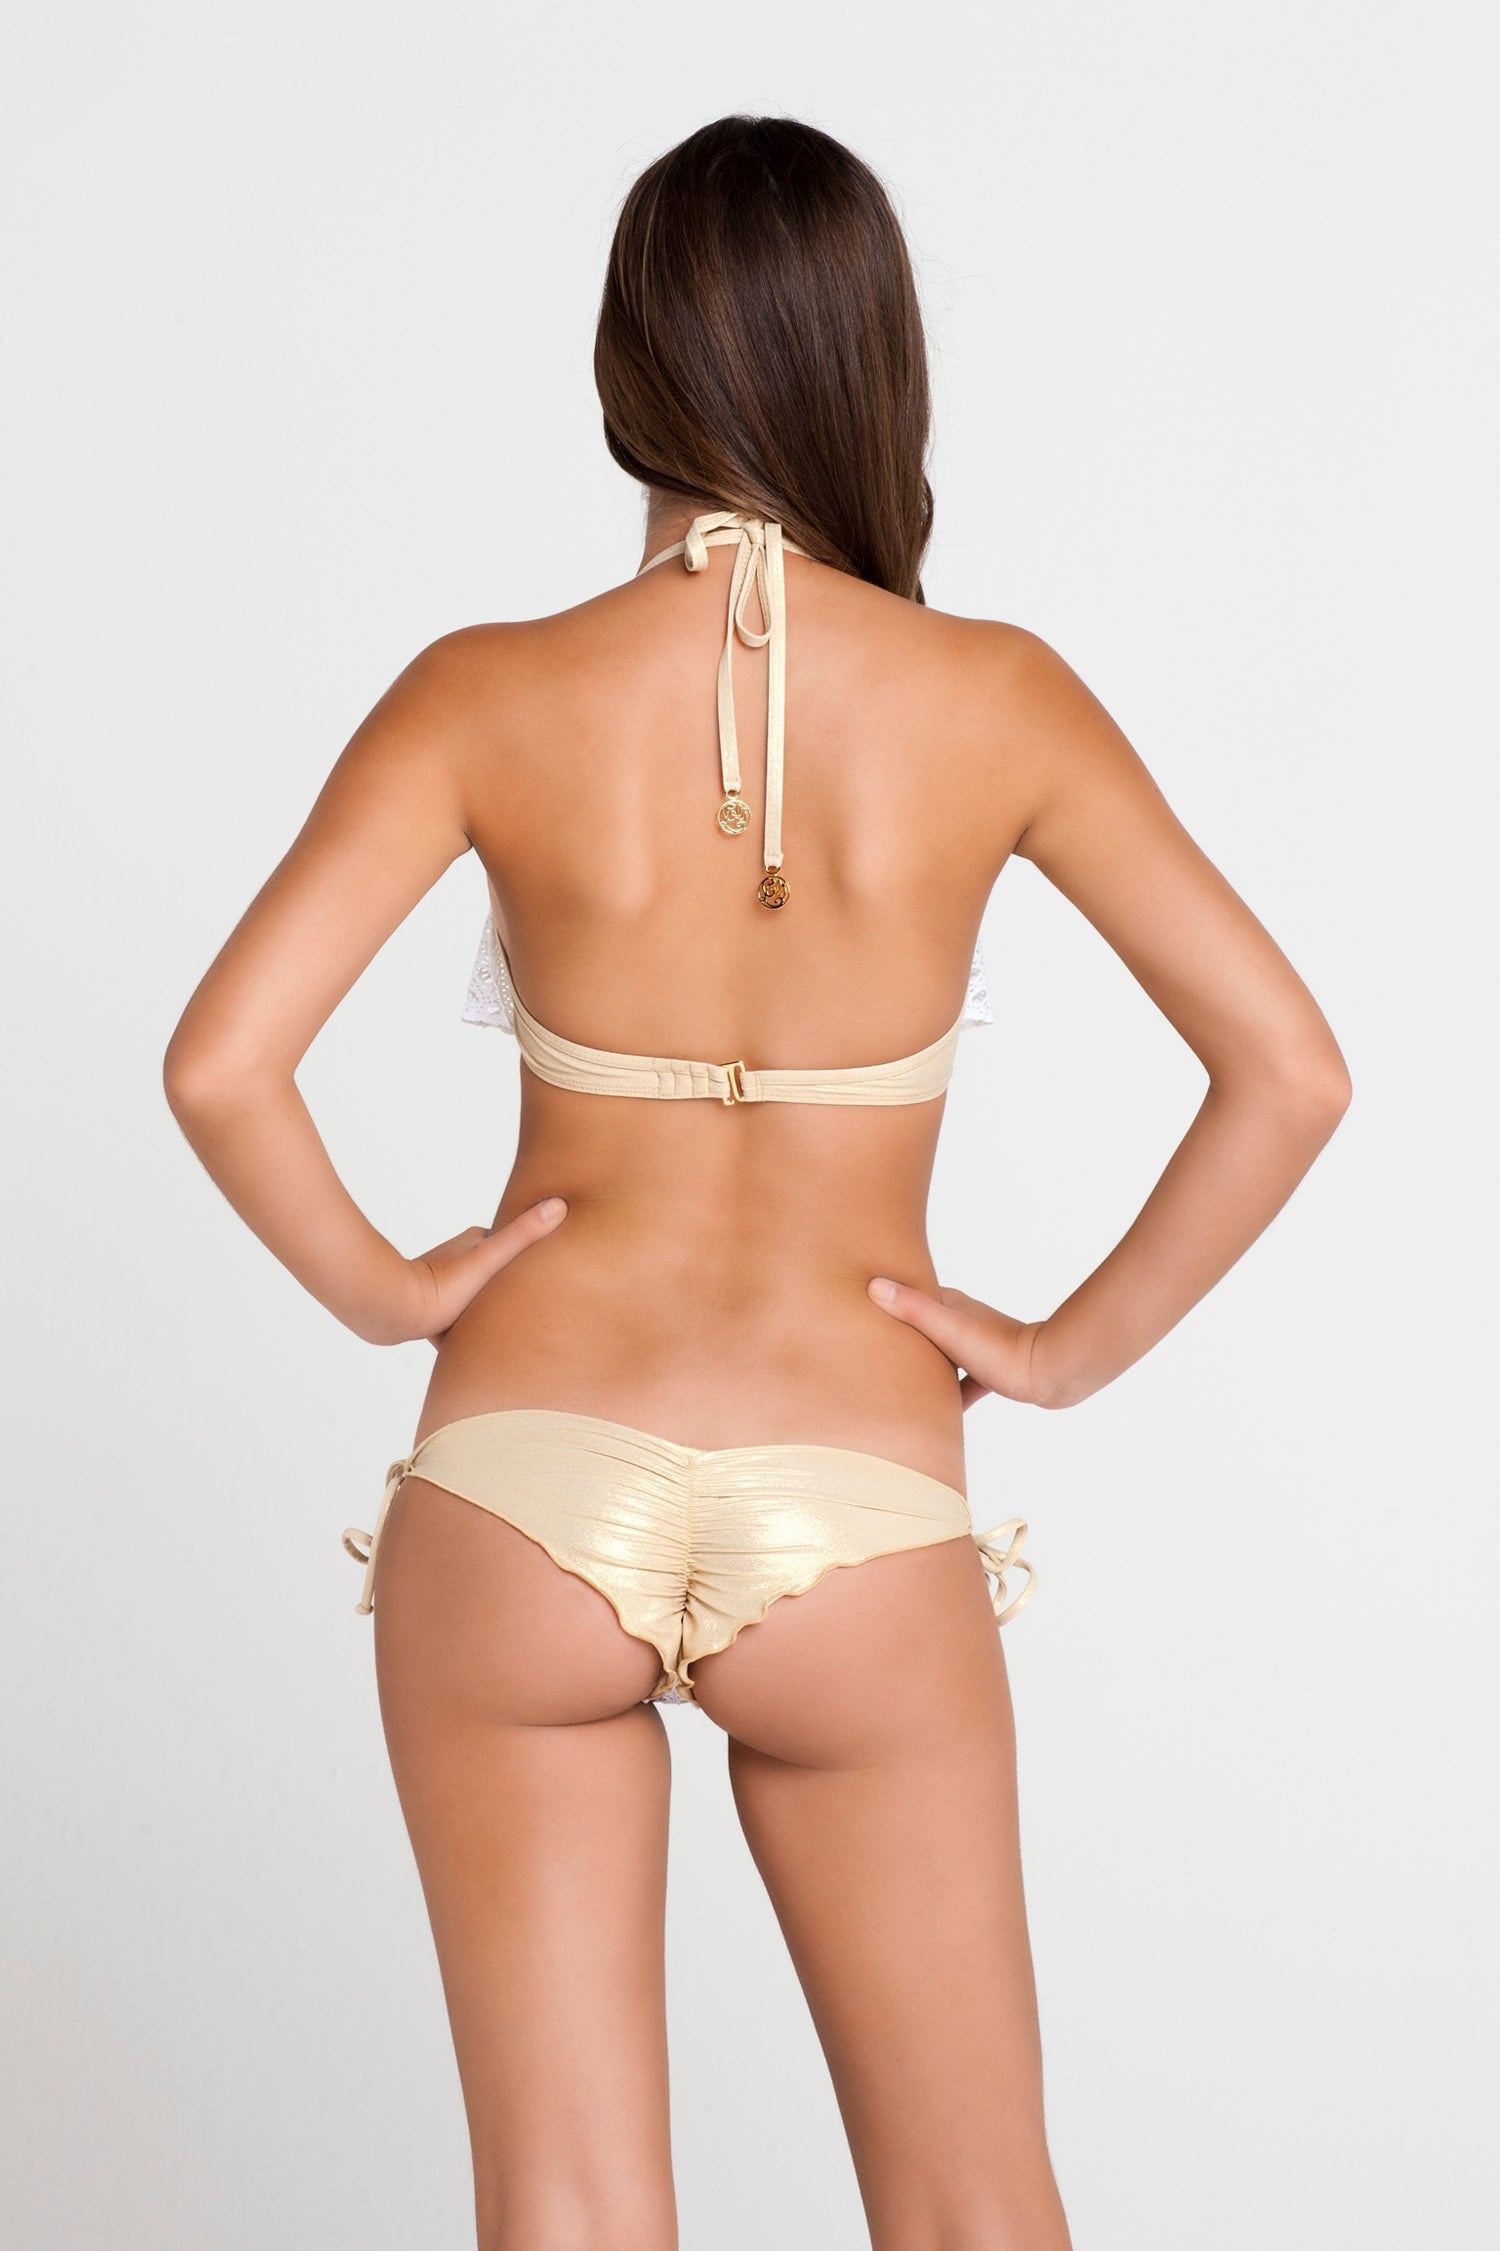 BURBUJAS DE AMOR - Cascade Push Up Underwire Top & Wavey Ruched Back Brazilian Tie Side Bottom • White